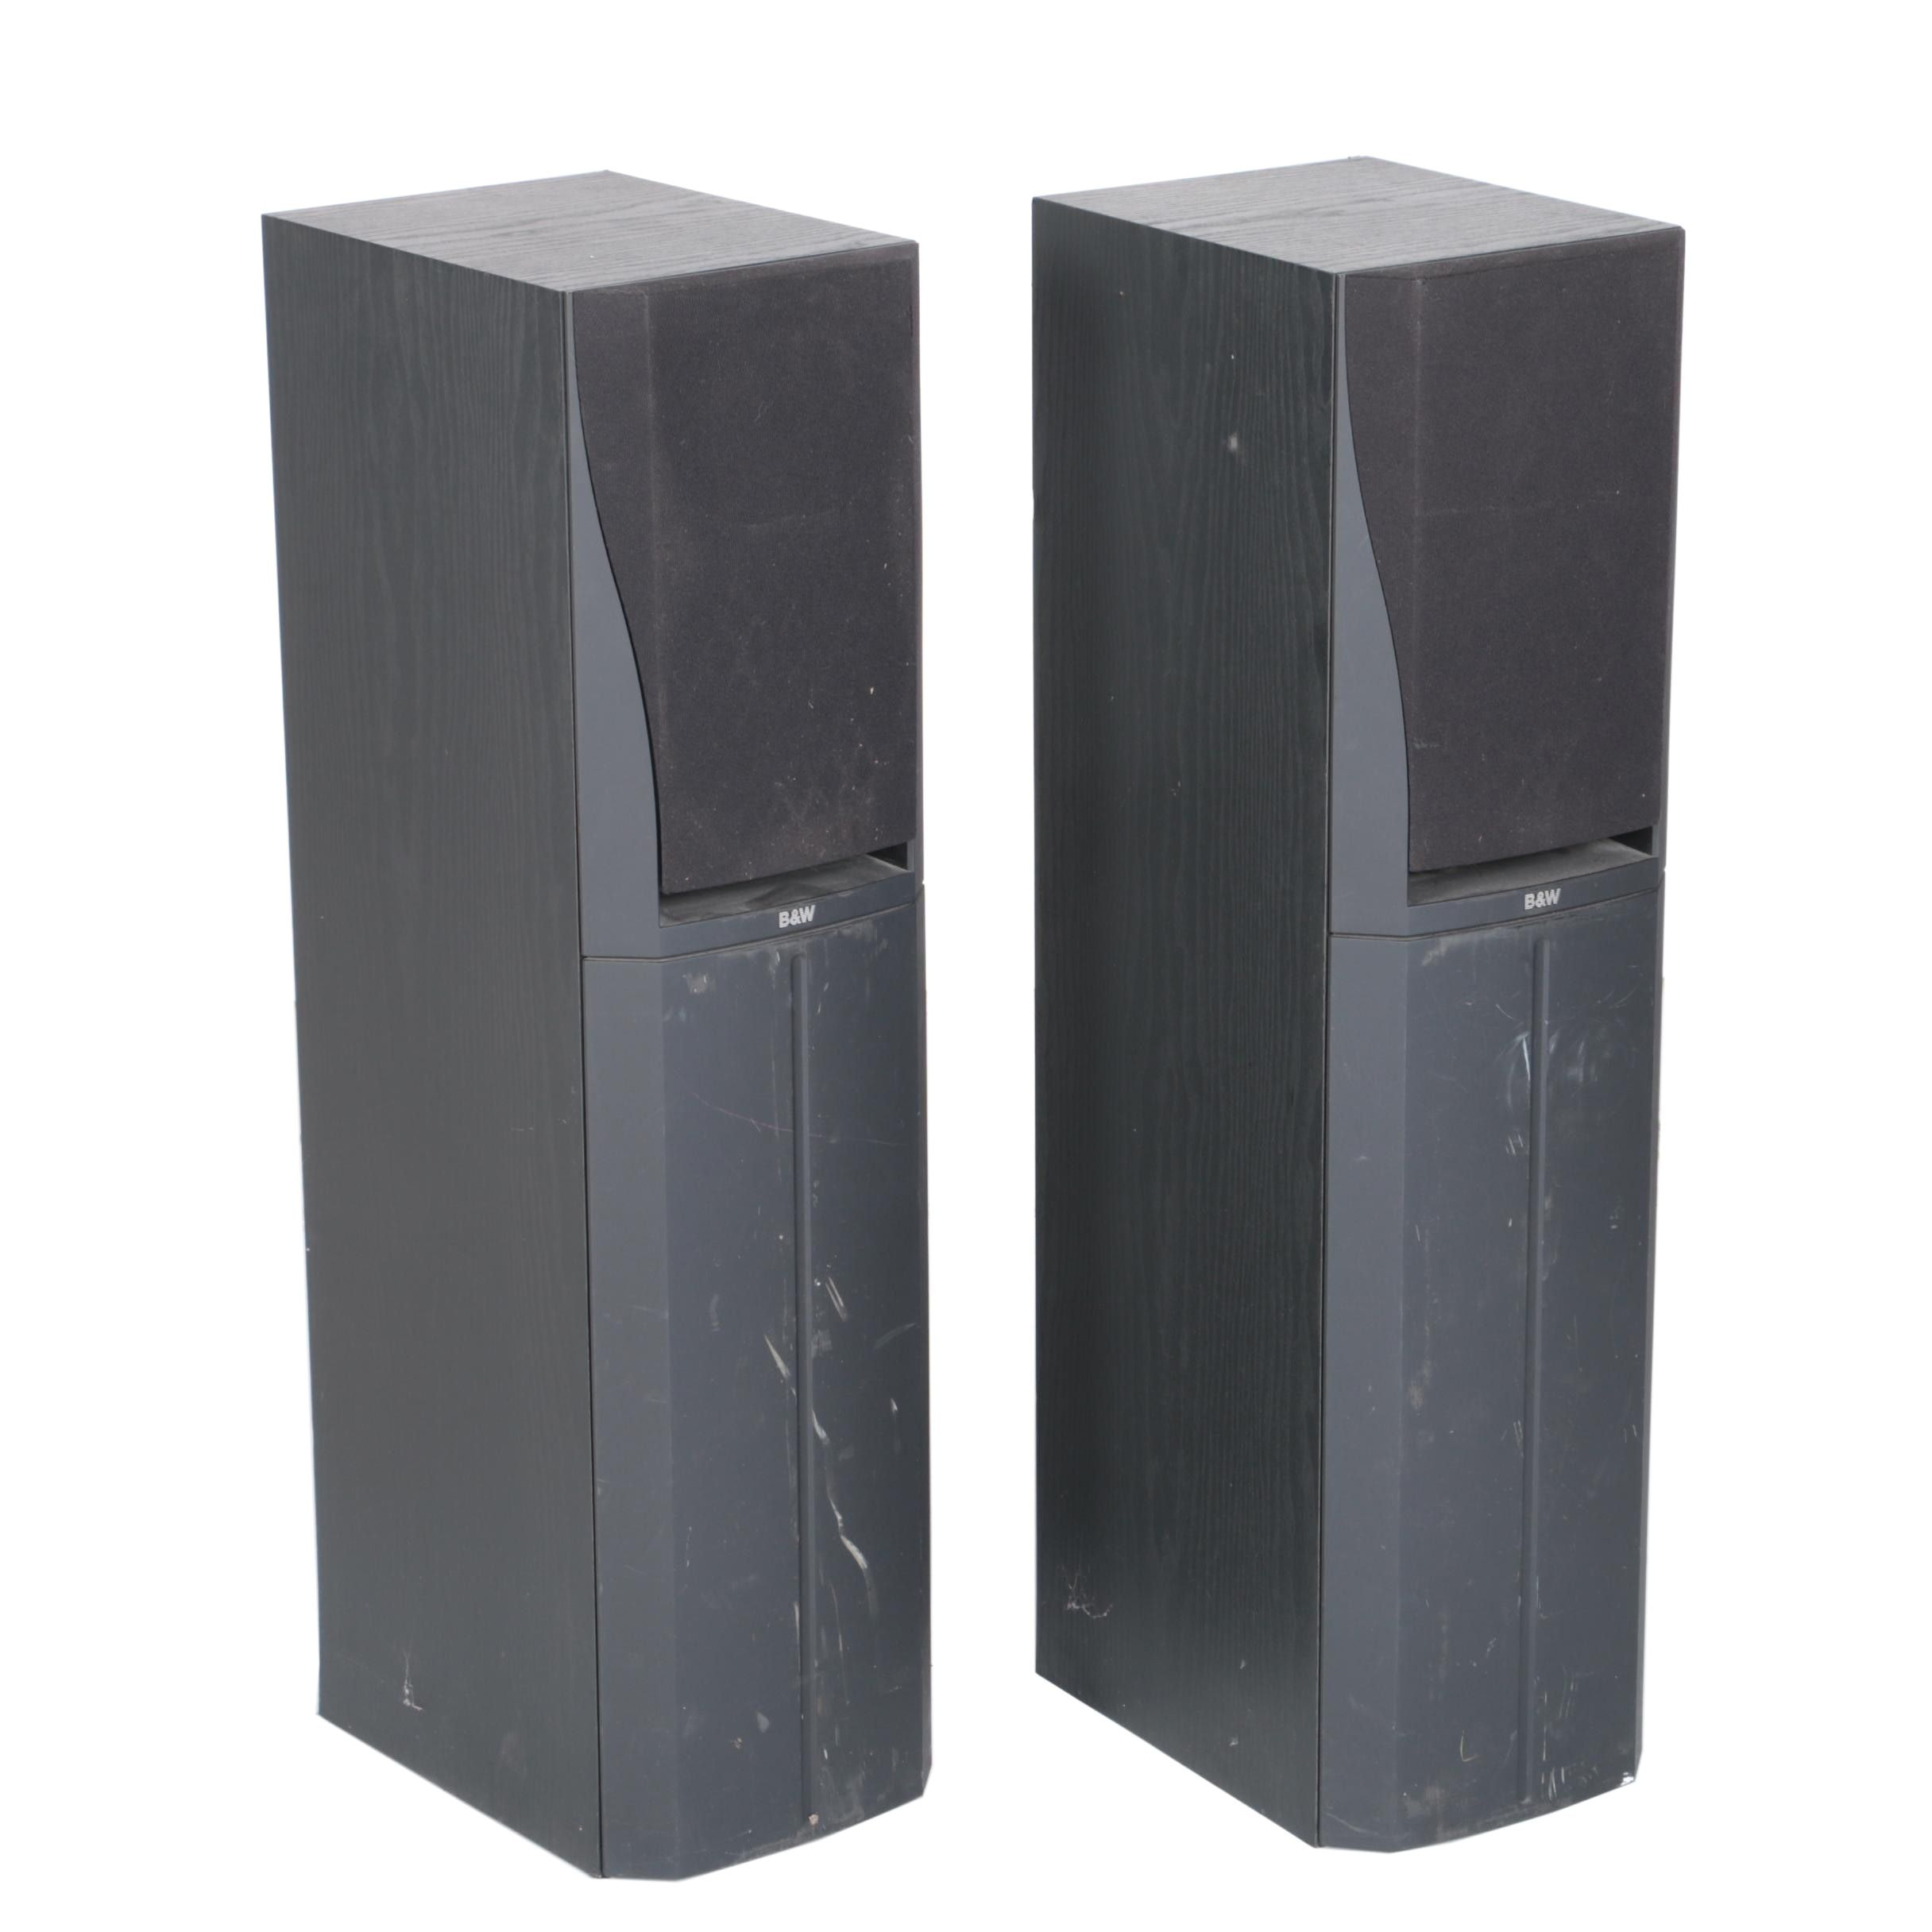 Bowers & Wilkins DM'305 Floorstanding Speakers